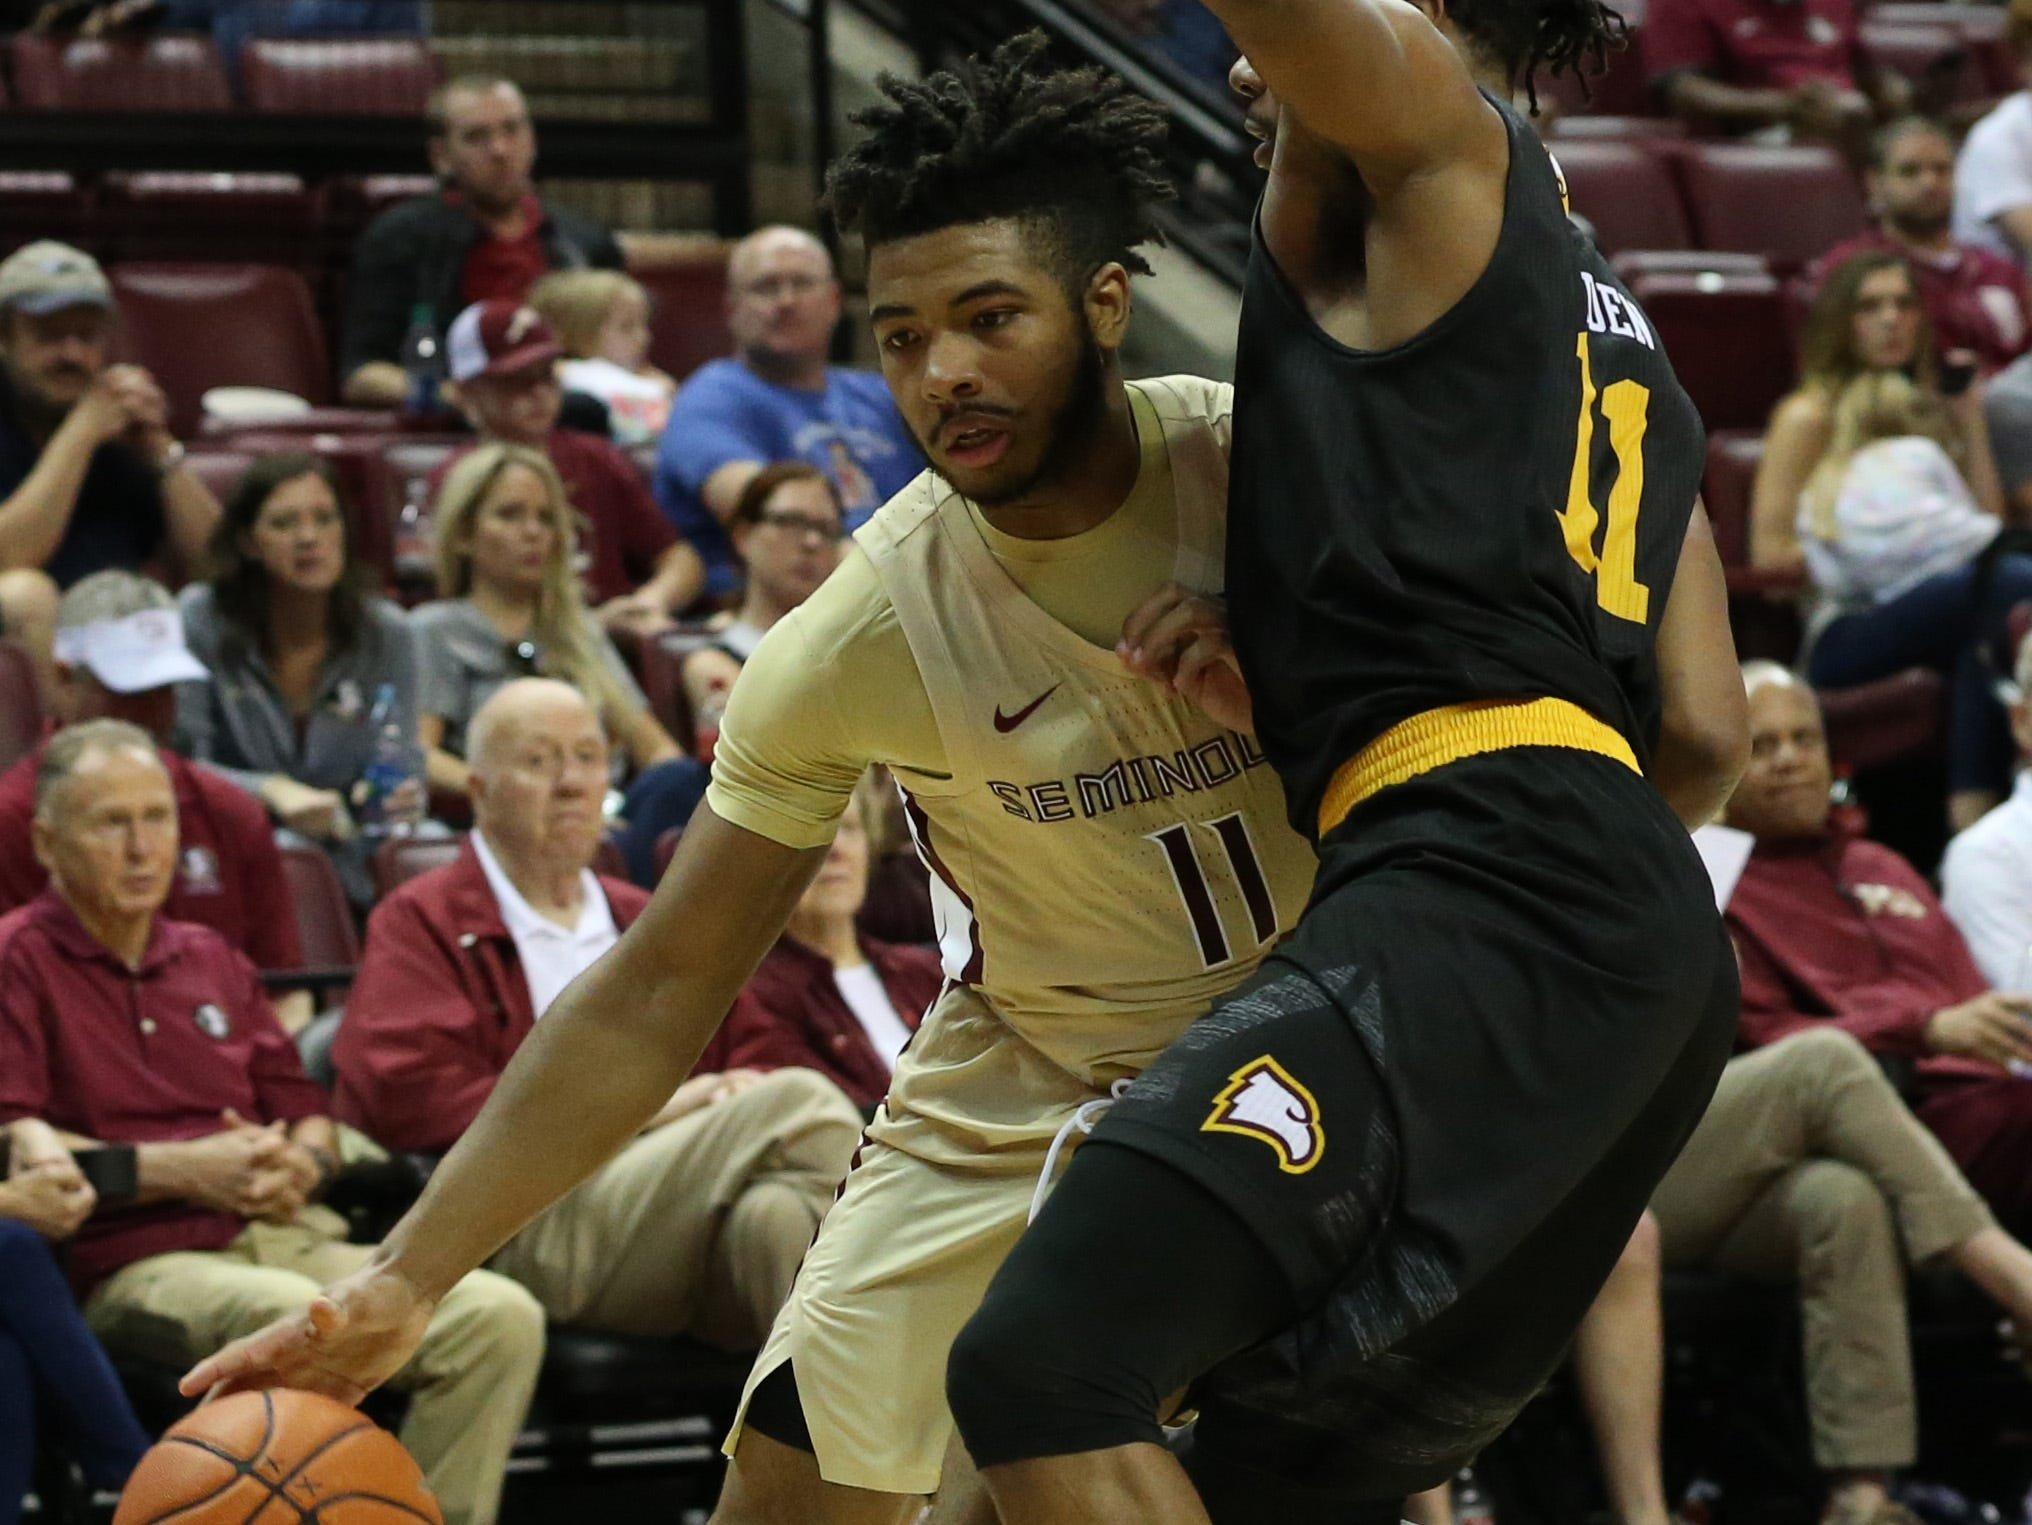 Florida State Seminoles guard David Nichols (11) drives the ball towards the hoop as the Florida State Seminoles host the Winthrop Eagles for men's basketball at the Tucker Civic Center, Tuesday, Jan. 1, 2019.